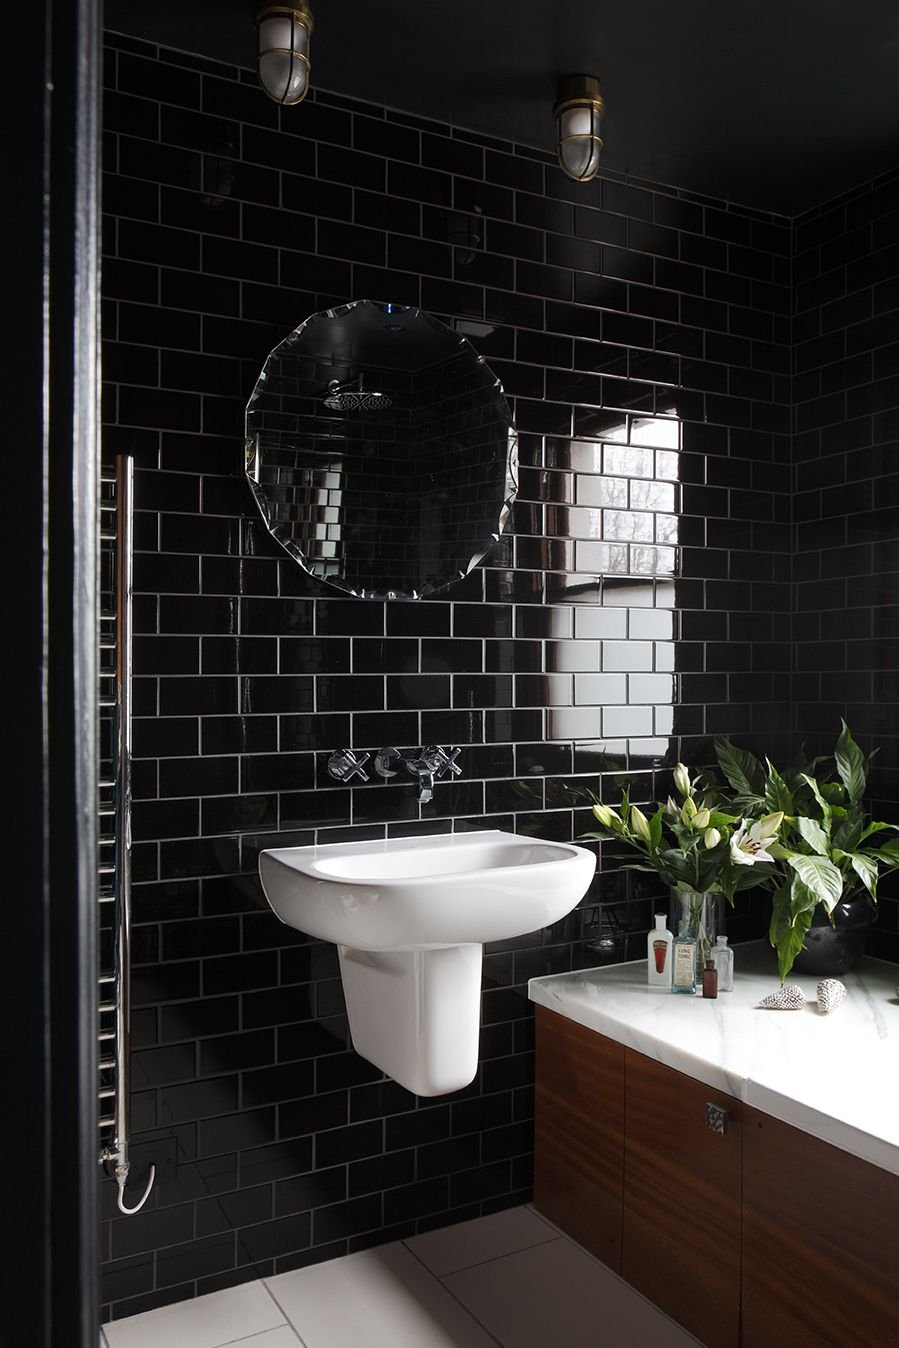 Black Bathroom With Traditional High Gloss Black Tiles With Iroko